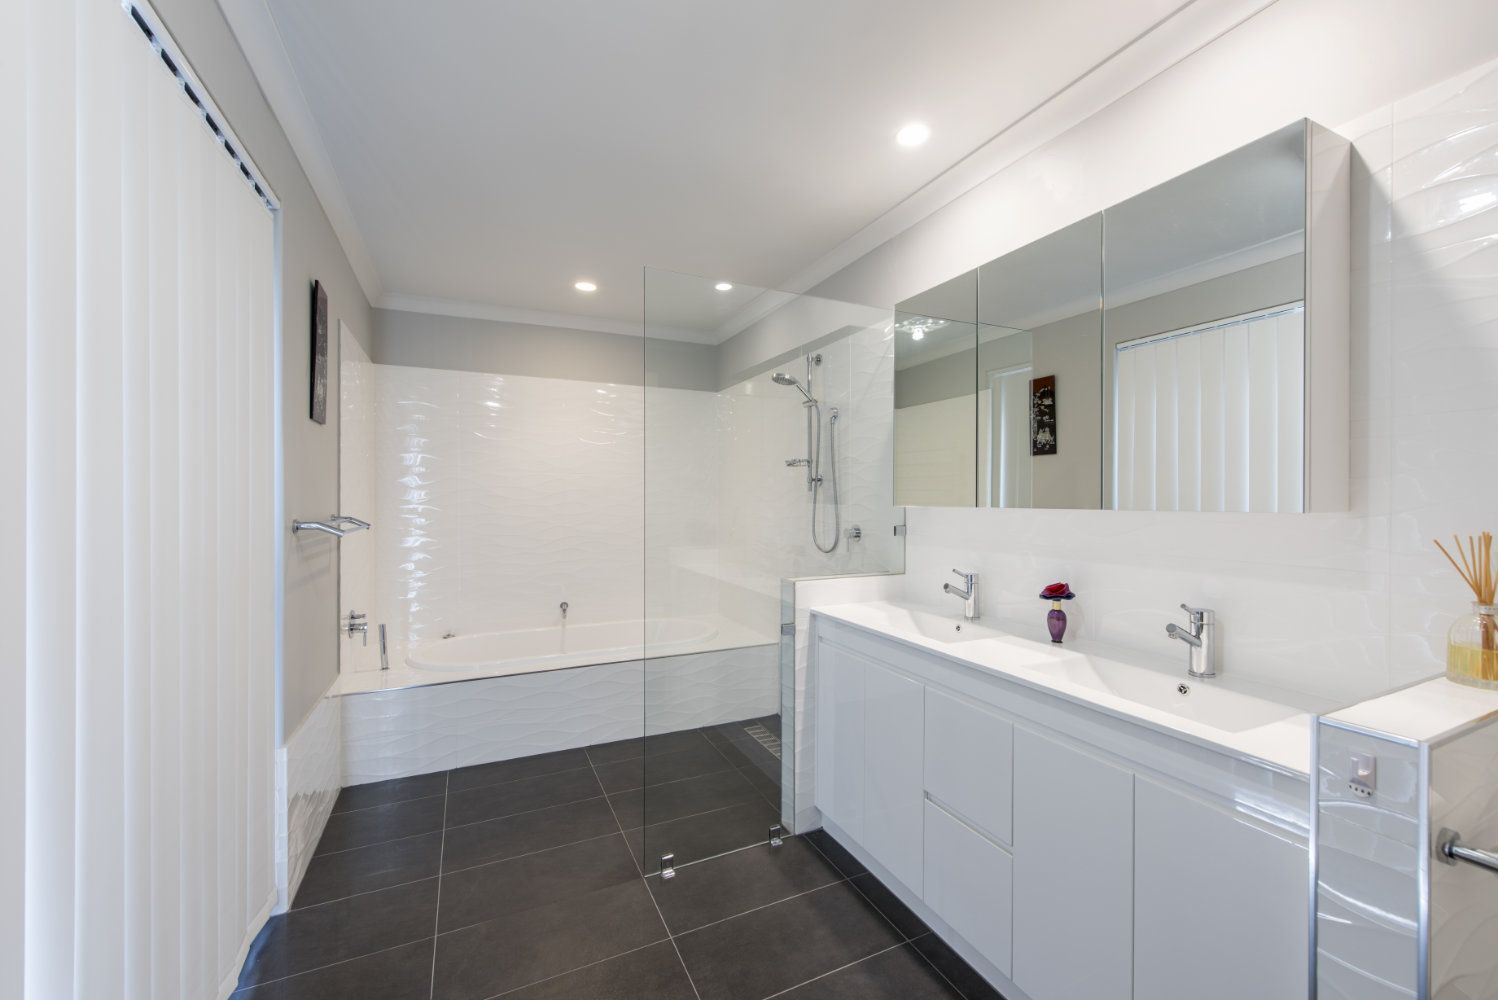 bathroom ideas perth in 2020 small bathroom renovations on bathroom renovation ideas melbourne id=11121